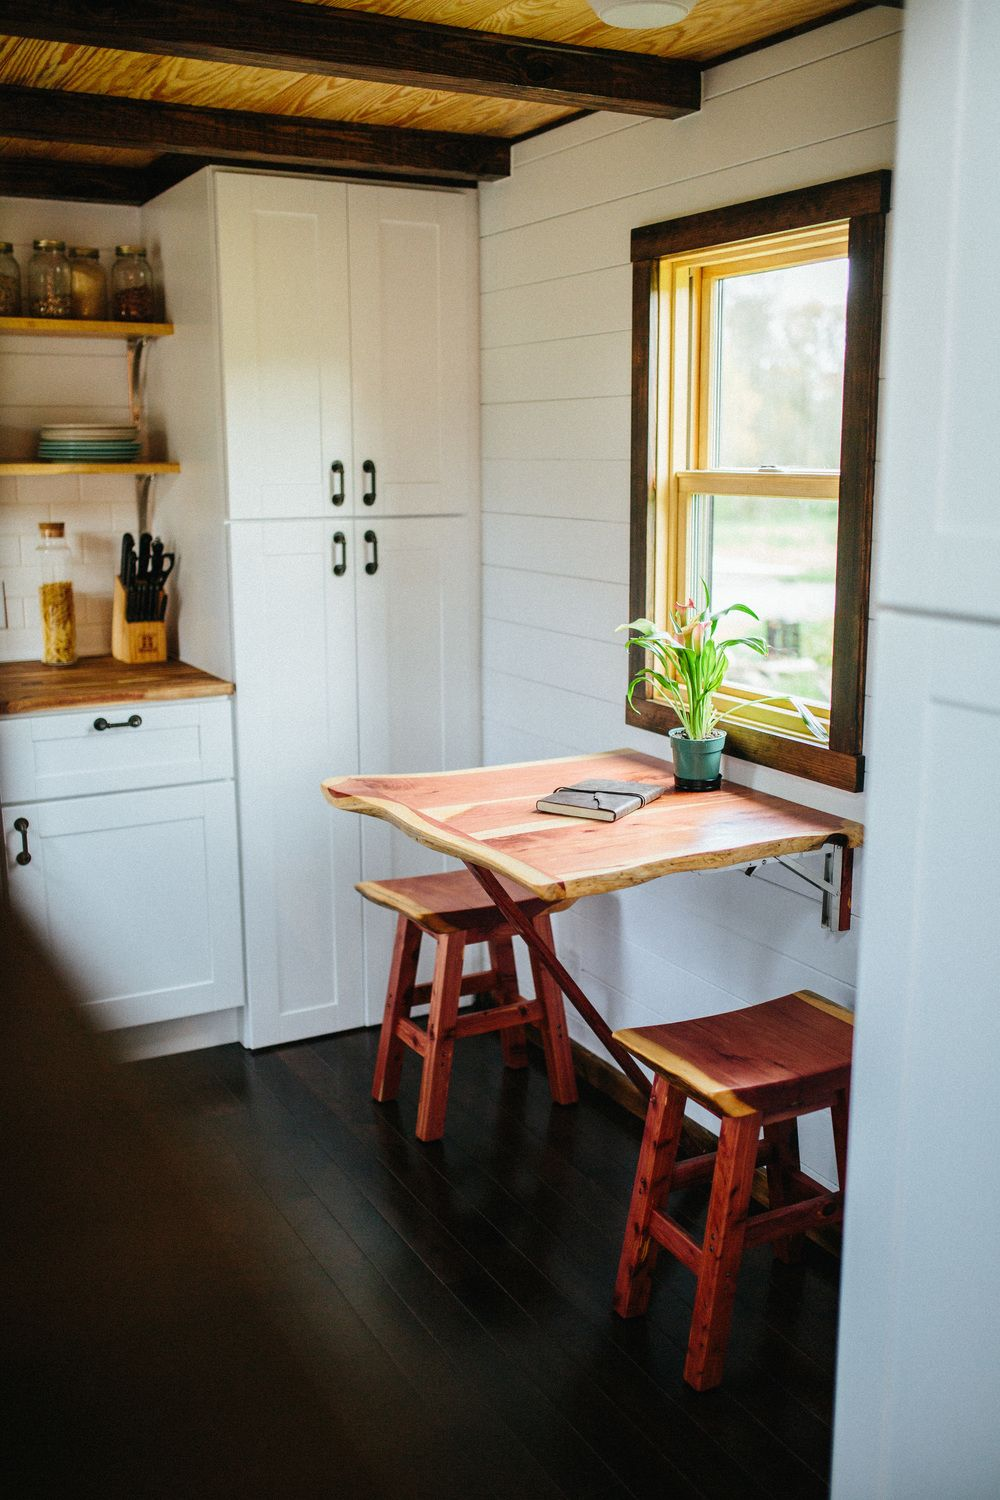 Tiny home kitchen - A High End Tiny Home Built By Wind River Tiny Homes In Tennessee